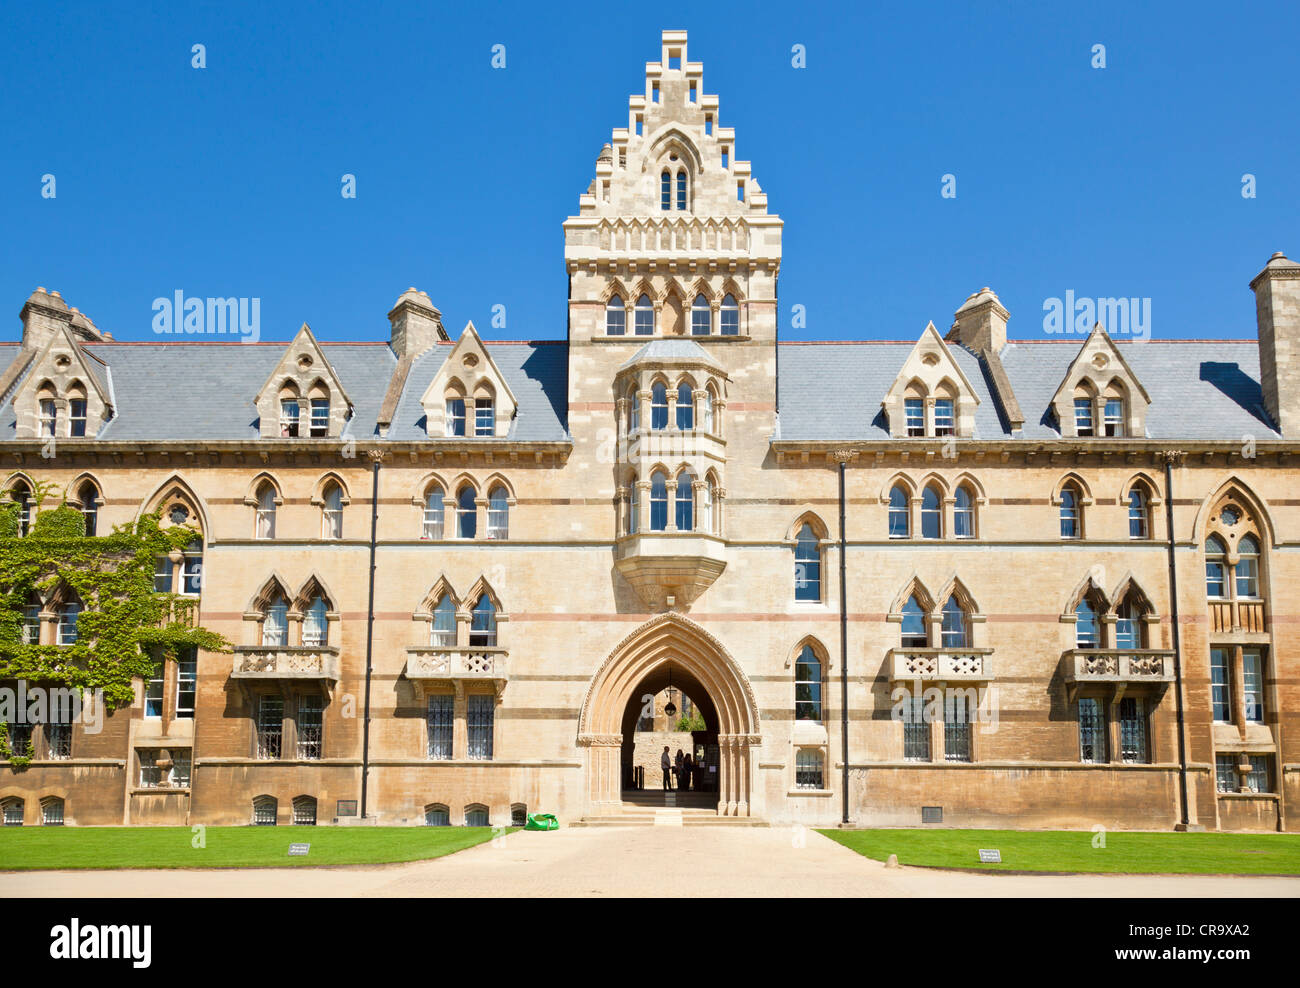 Christ Church college Meadow building Oxford University Oxfordshire England UK GB EU Europe - Stock Image